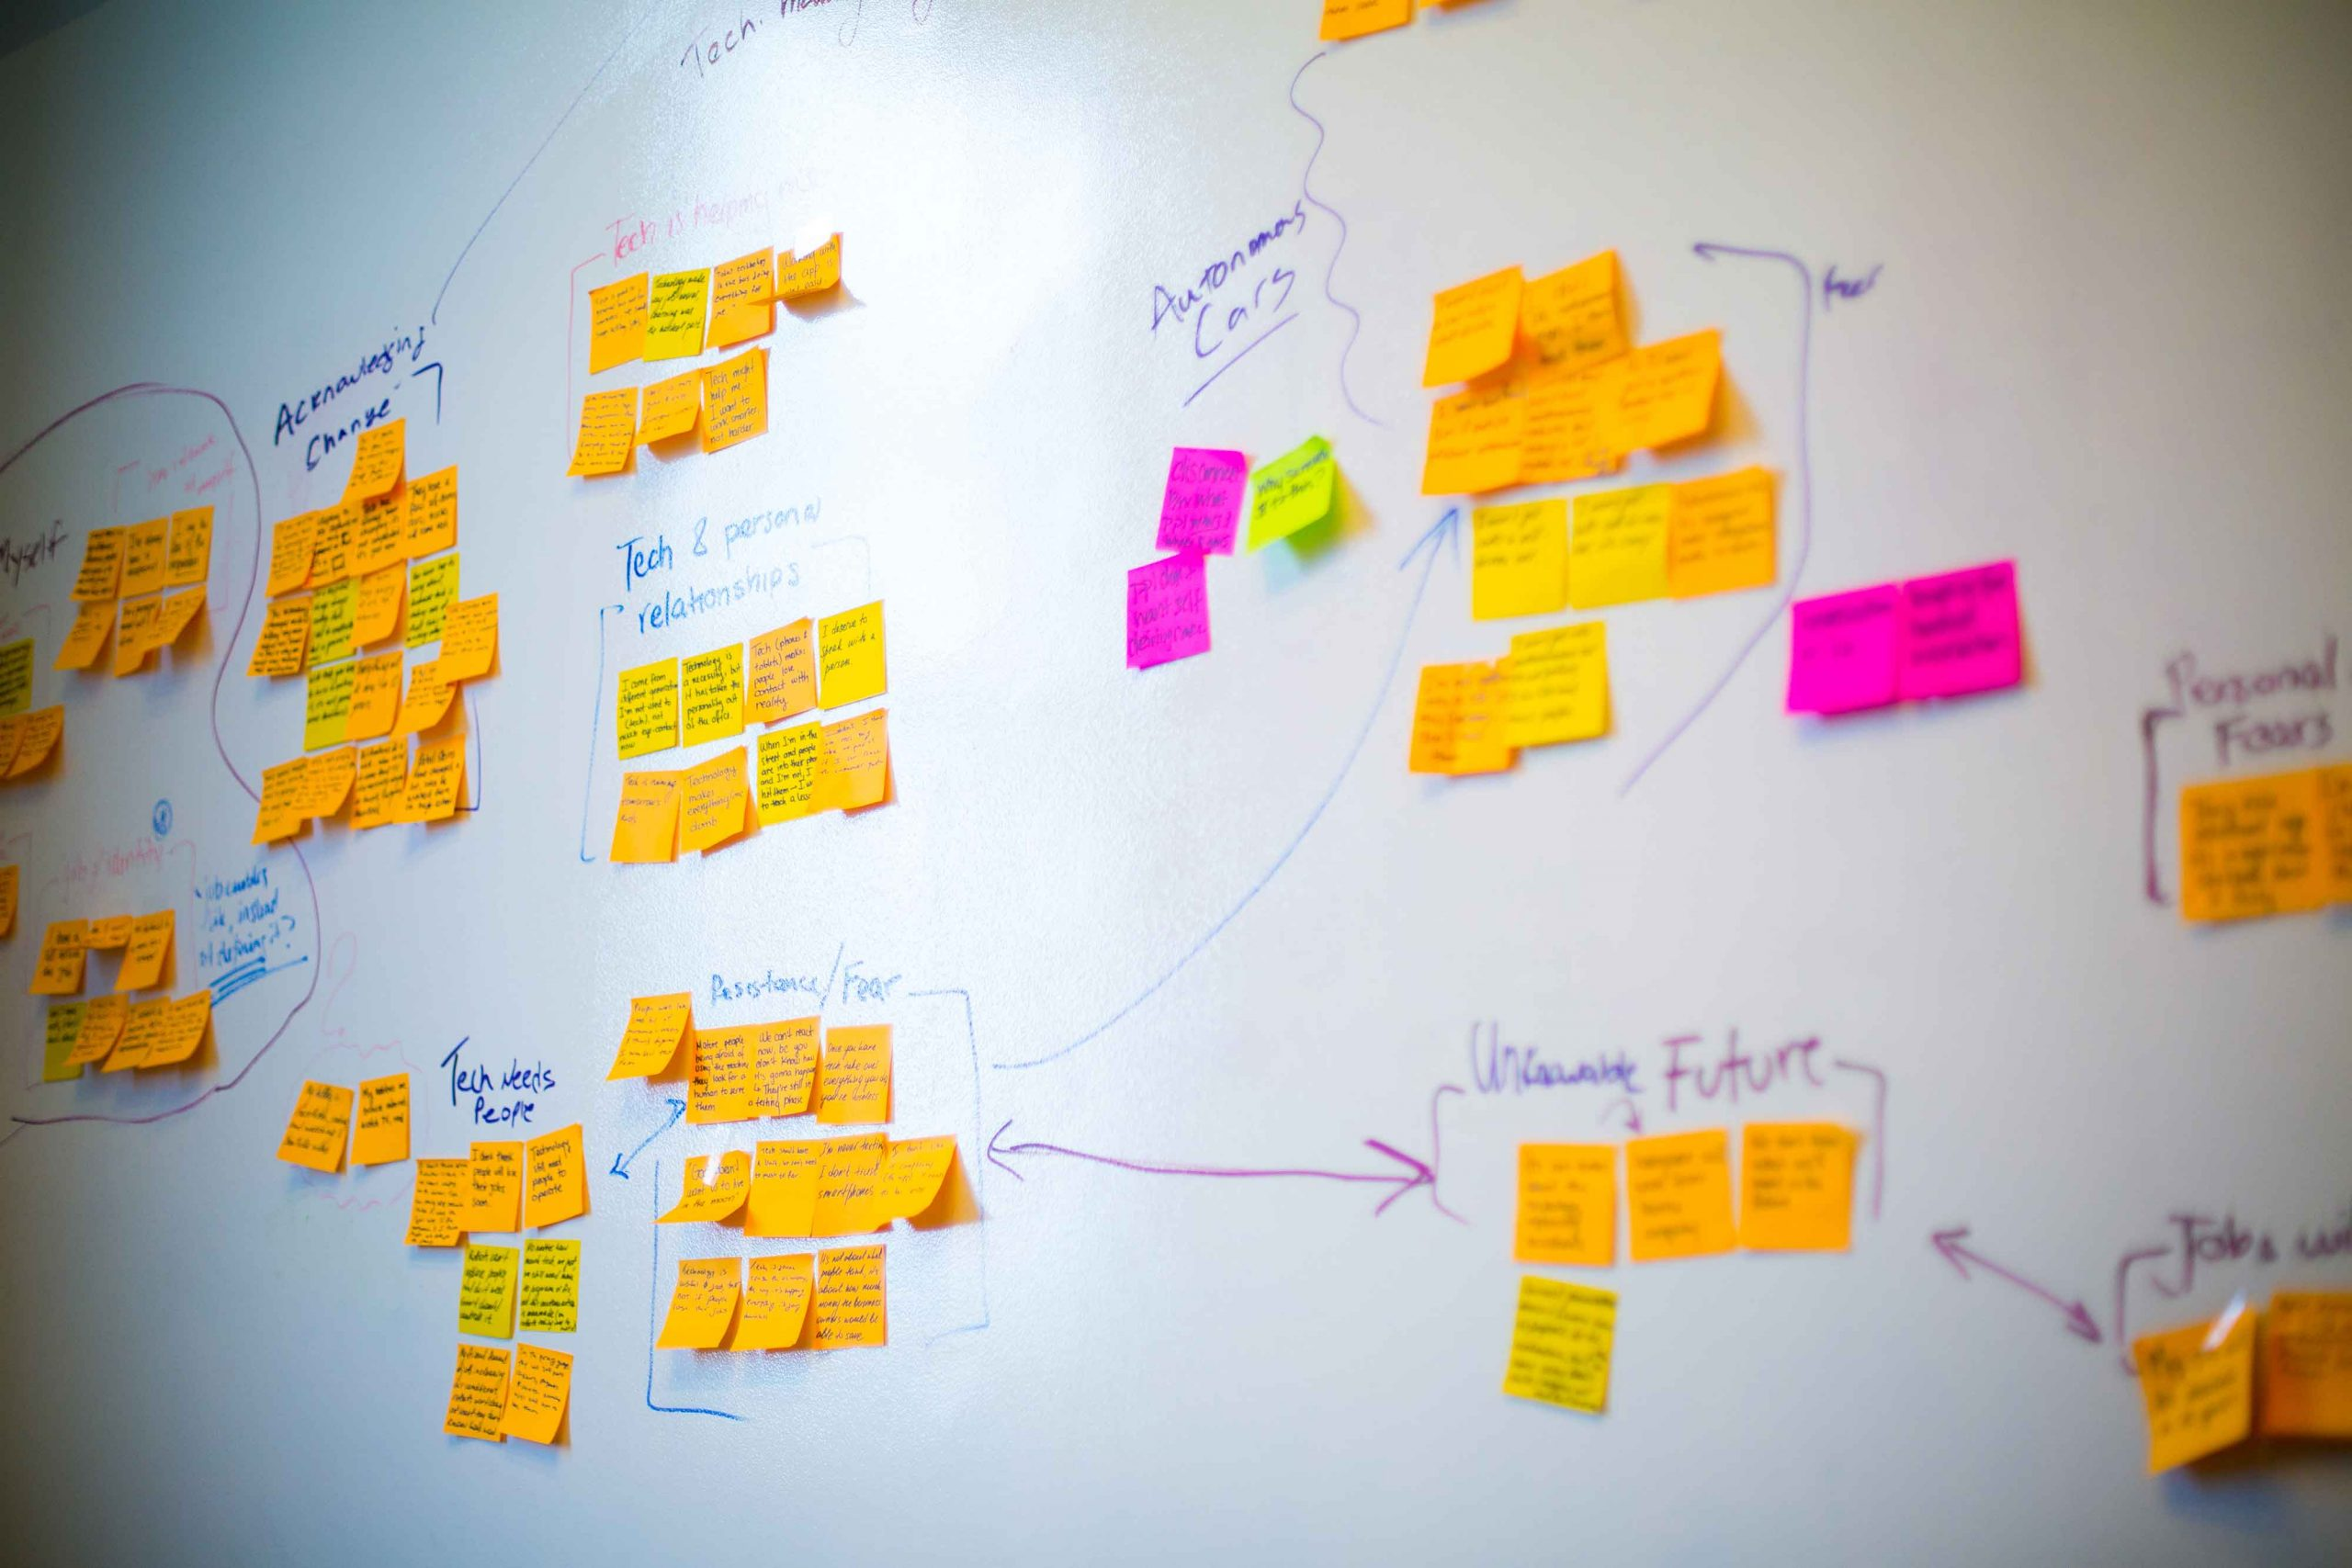 Post-It Notes on a Whiteboard - Mapping Out Ideas